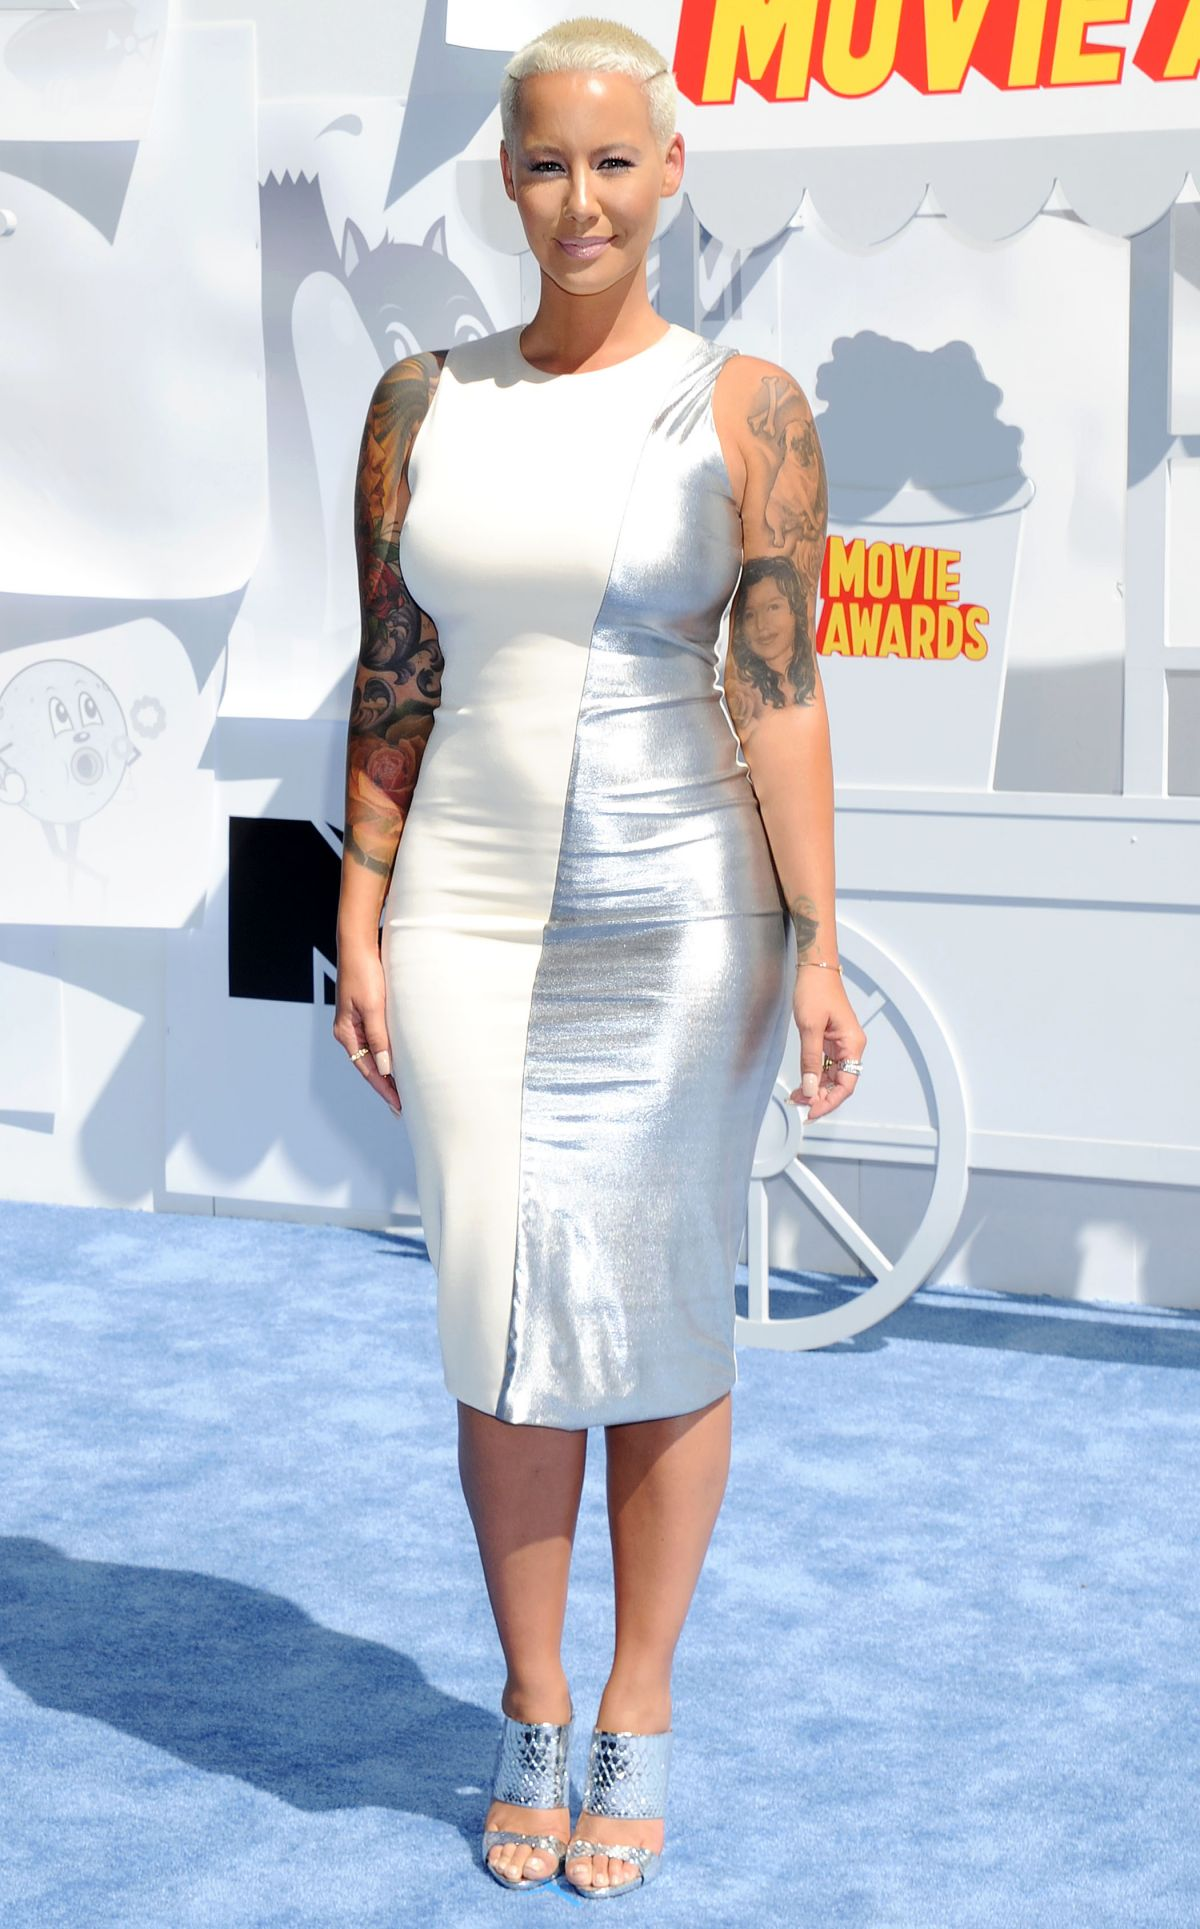 AMBER ROSE at 2015 MTV Movie Awards in Los Angeles